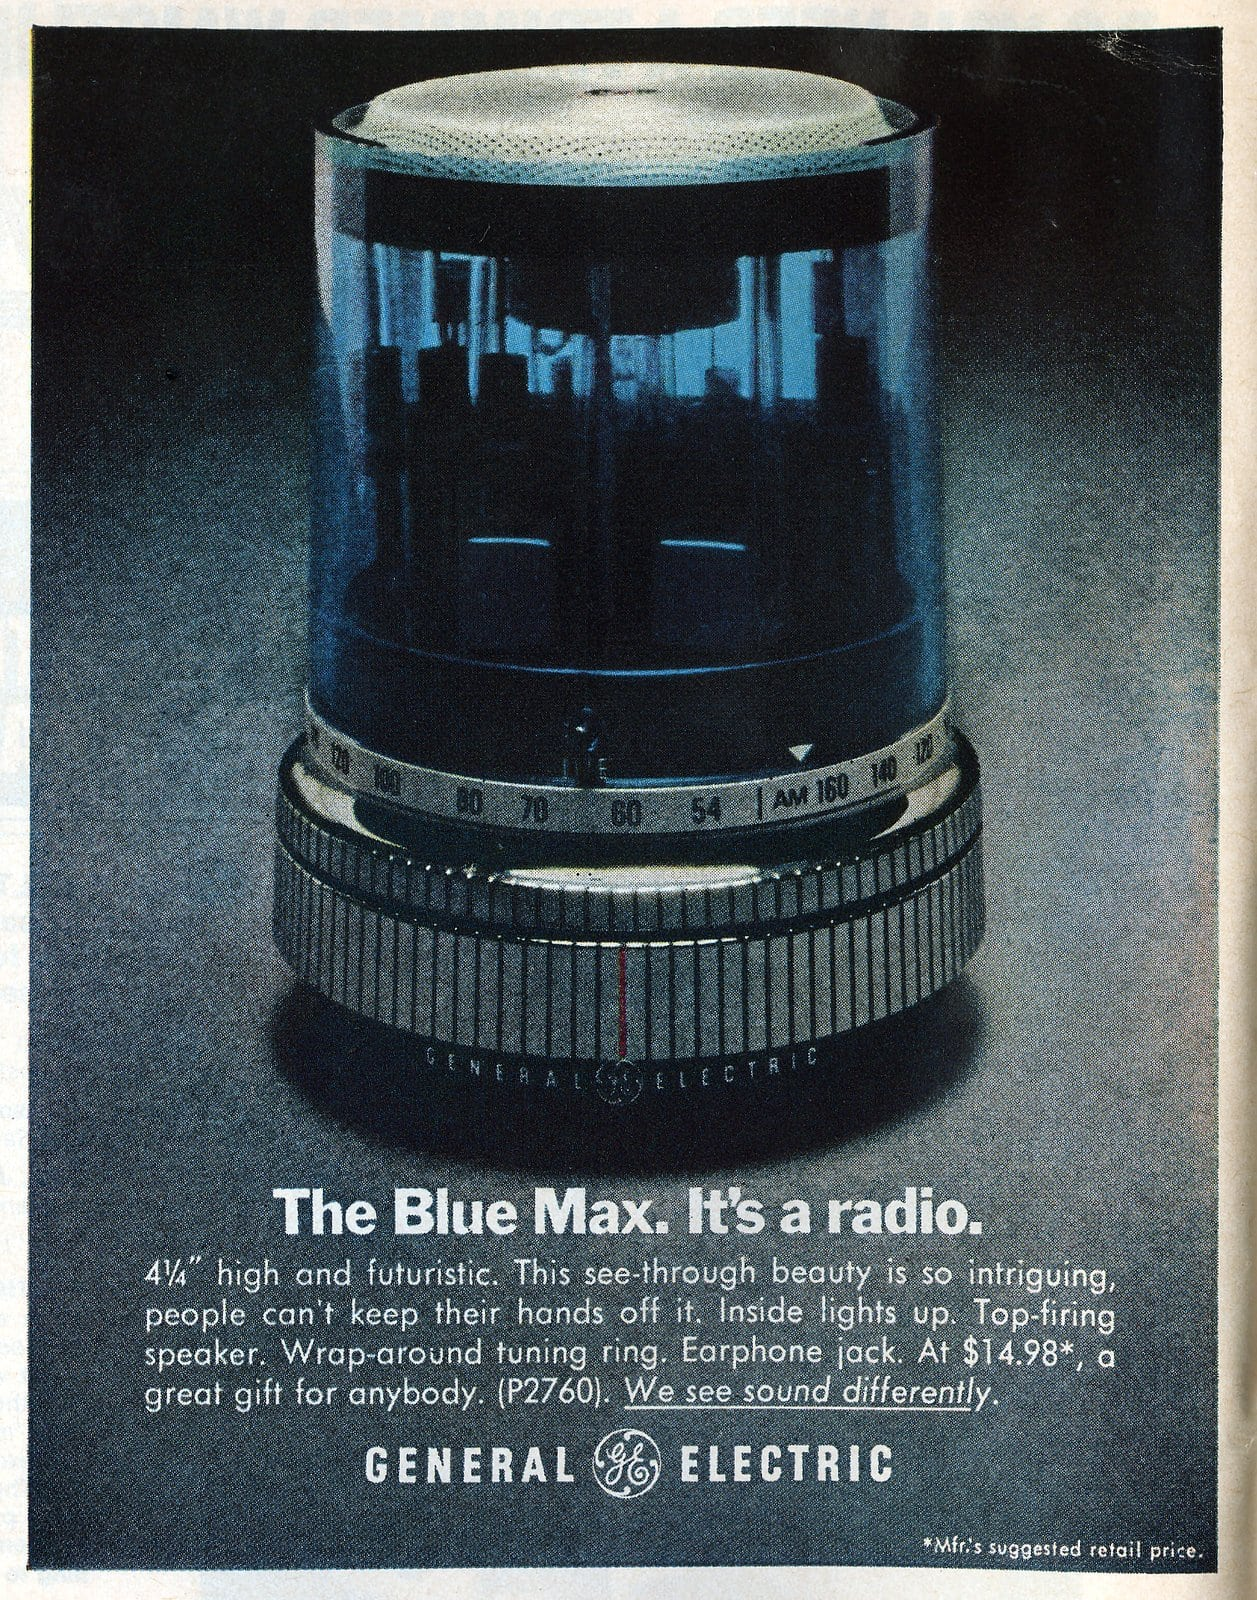 The Blue Max. It's a radio. (1970)